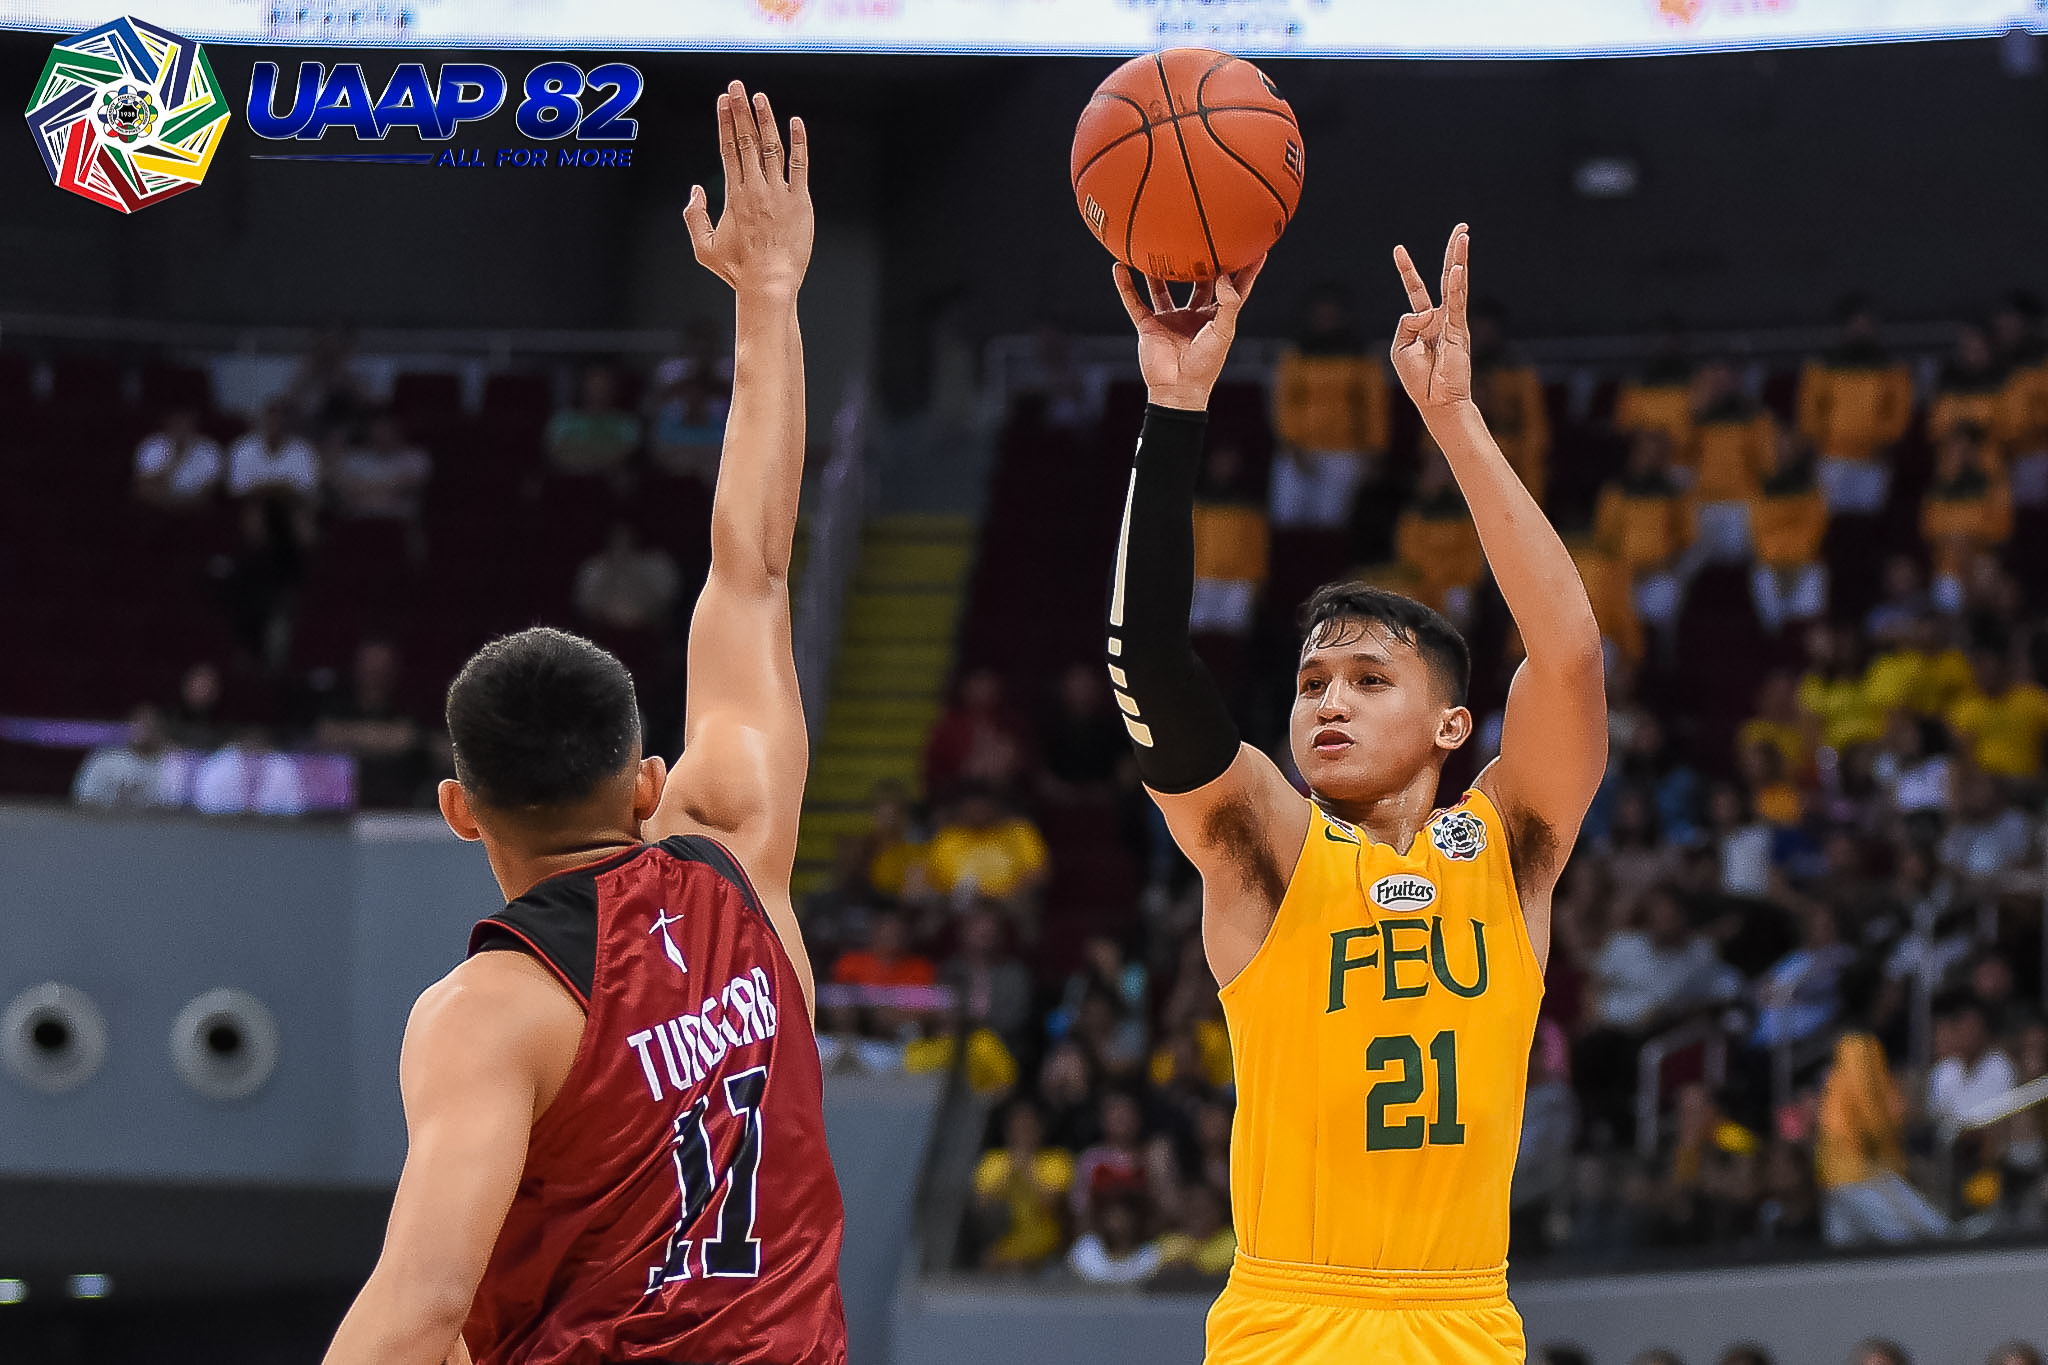 FEU outlasts UP in OT for 2nd straight win